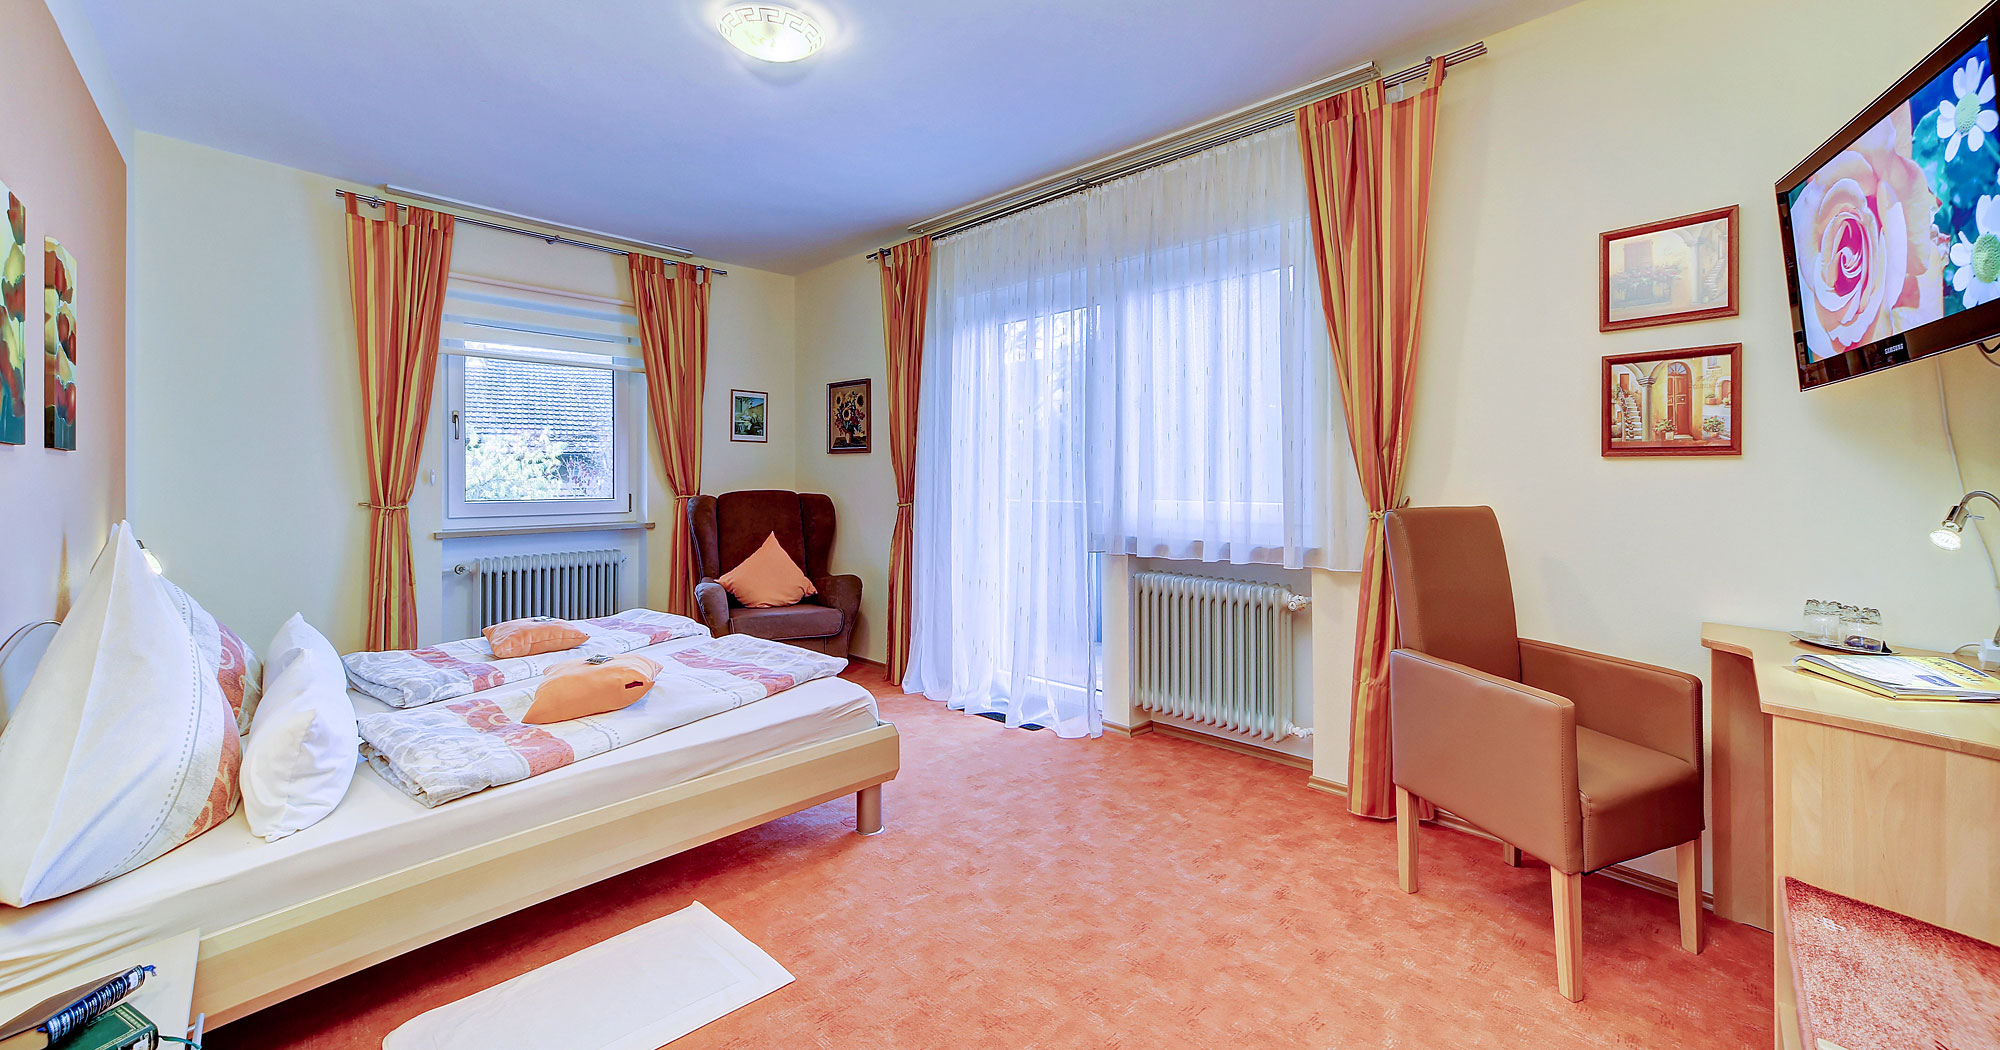 Pension mit Gästezimmer in Drachselsried